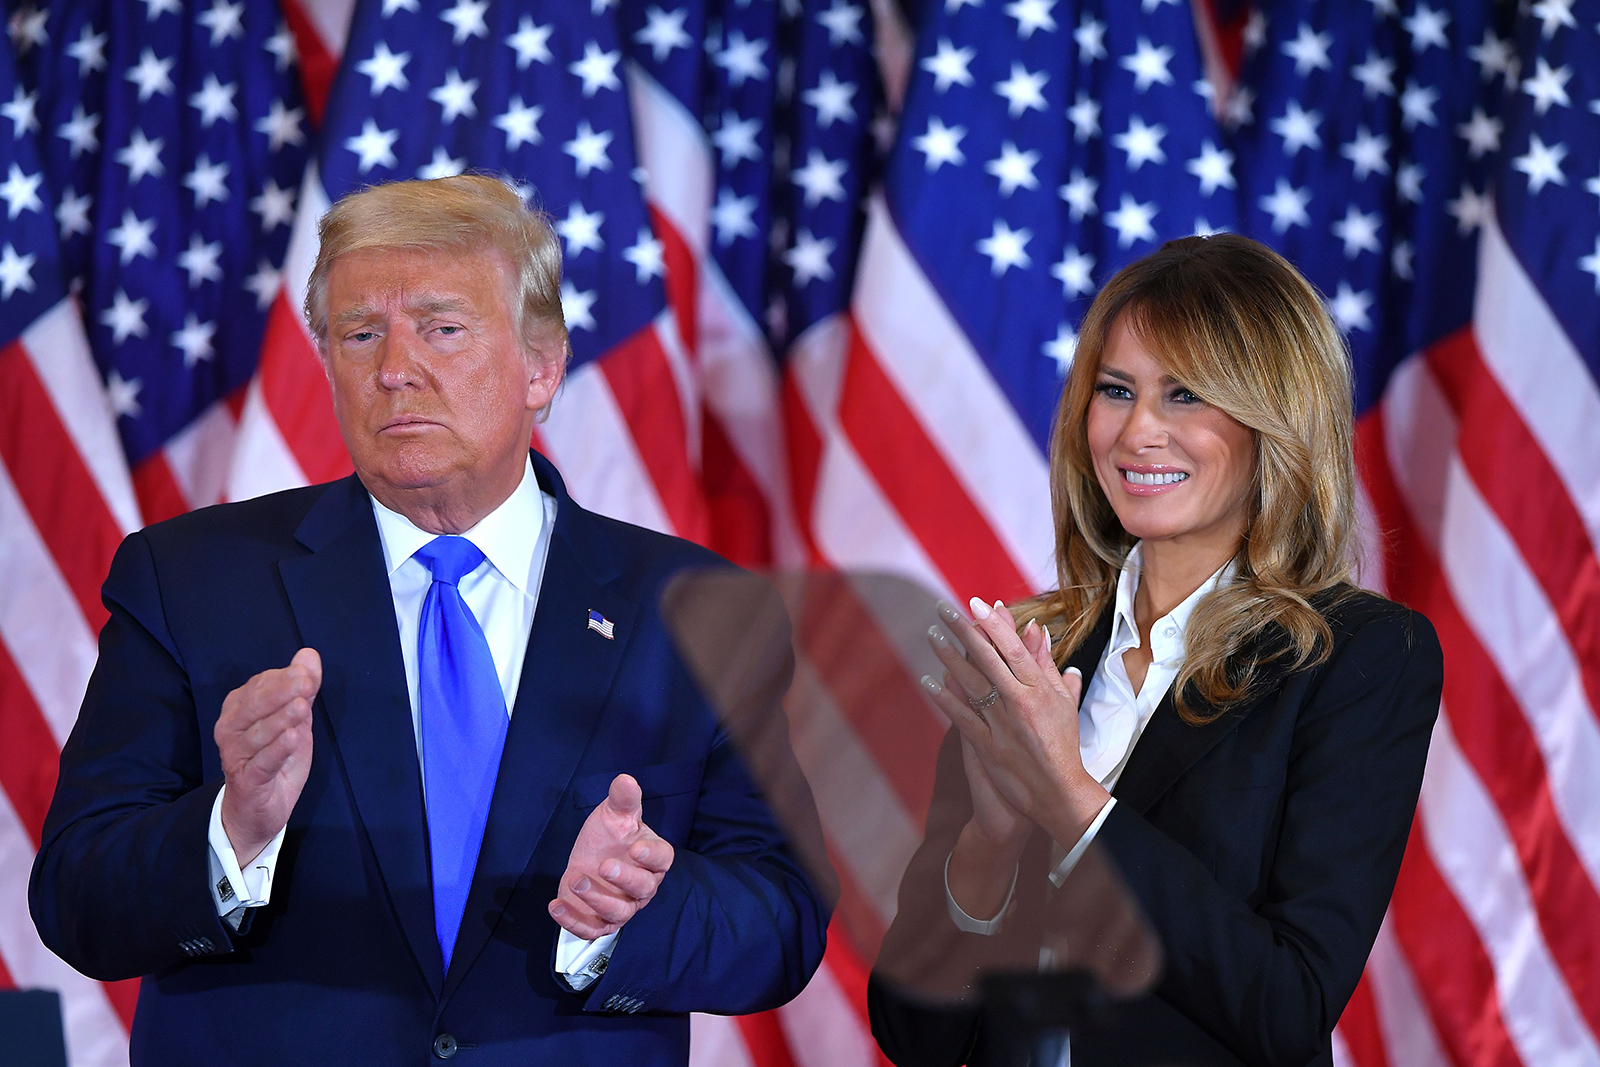 President Donald Trump claps alongside First Lady Melania Trump after speaking during election night in the East Room of the White House in Washington, DC, early on November 4.